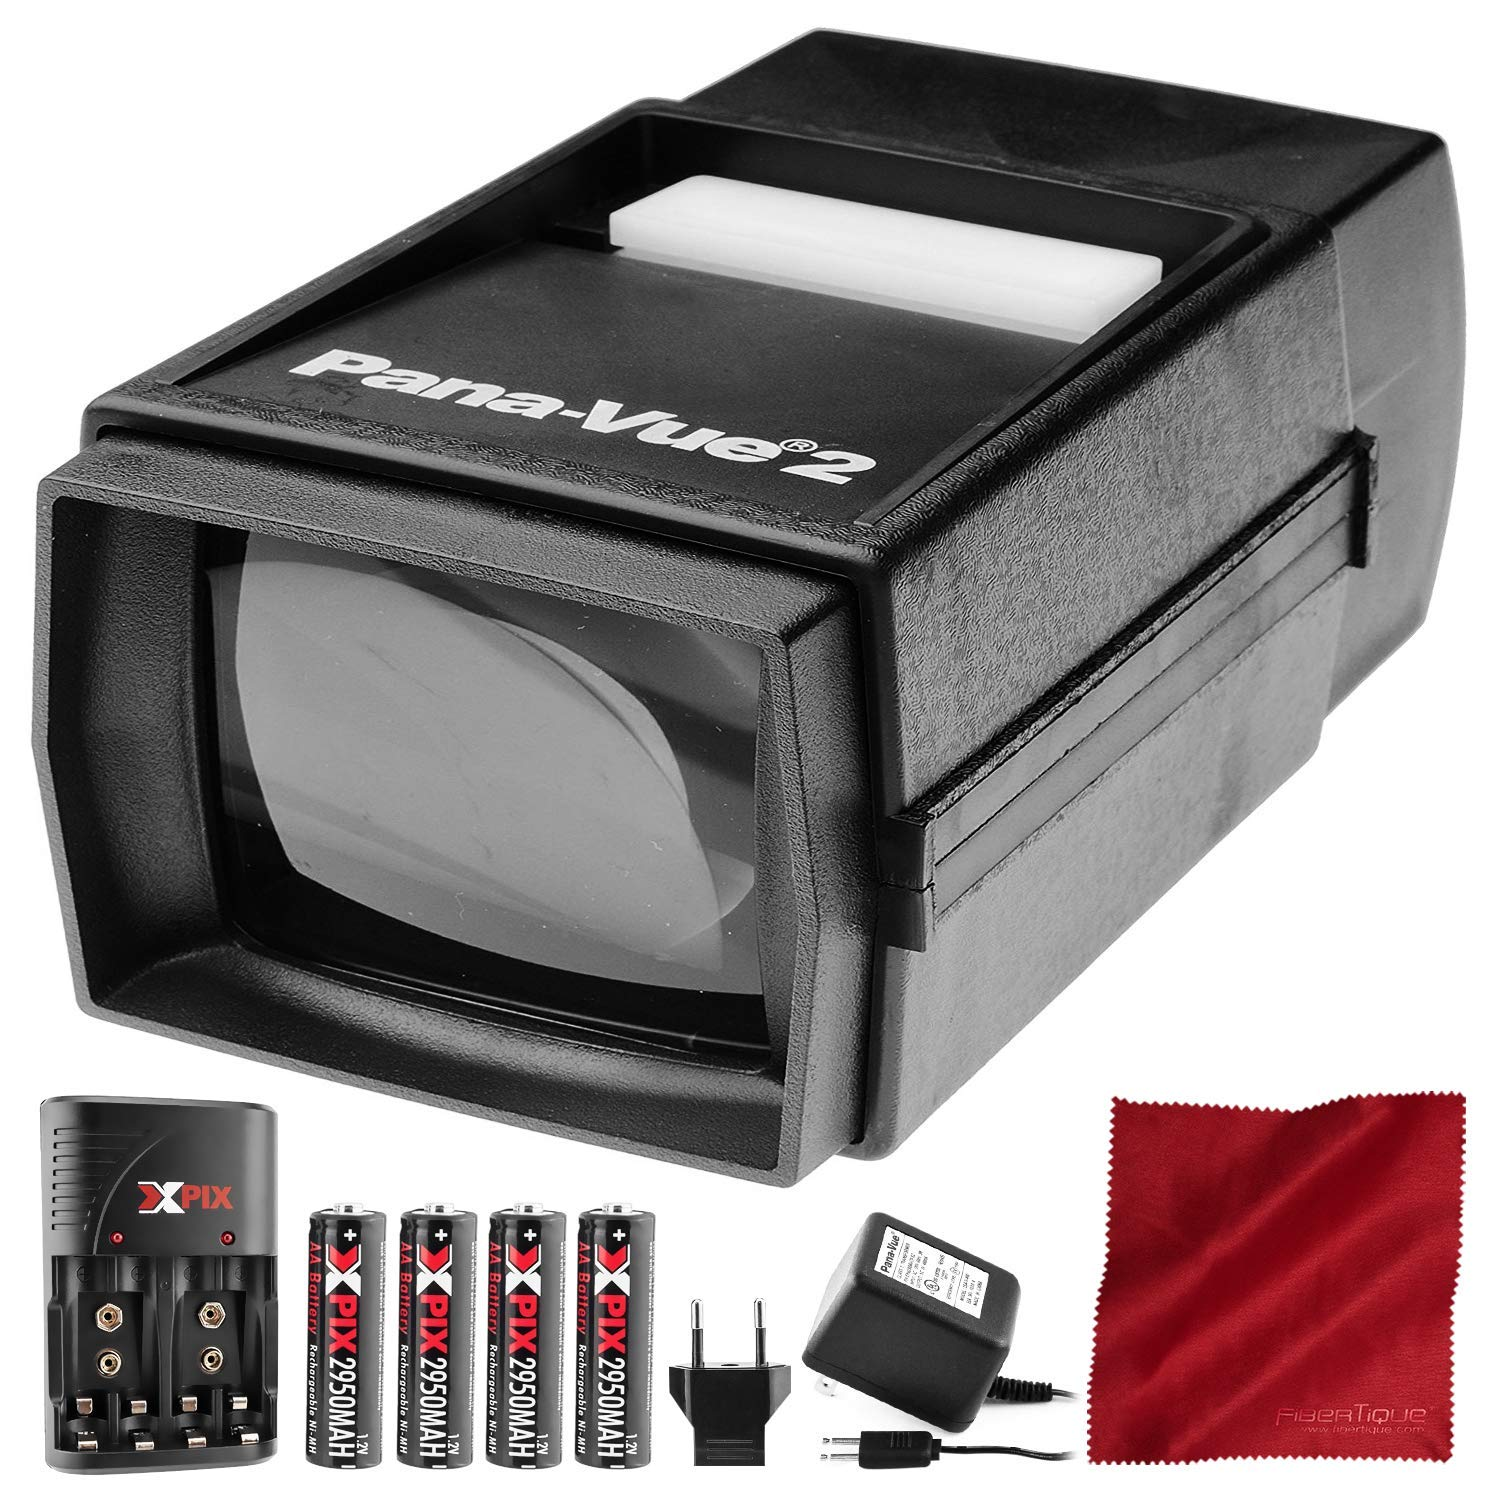 Pana-Vue 2 Illuminated Slide Viewer + Transformer + Battery & Charger Kit Deluxe Bundle by Pana-Vue